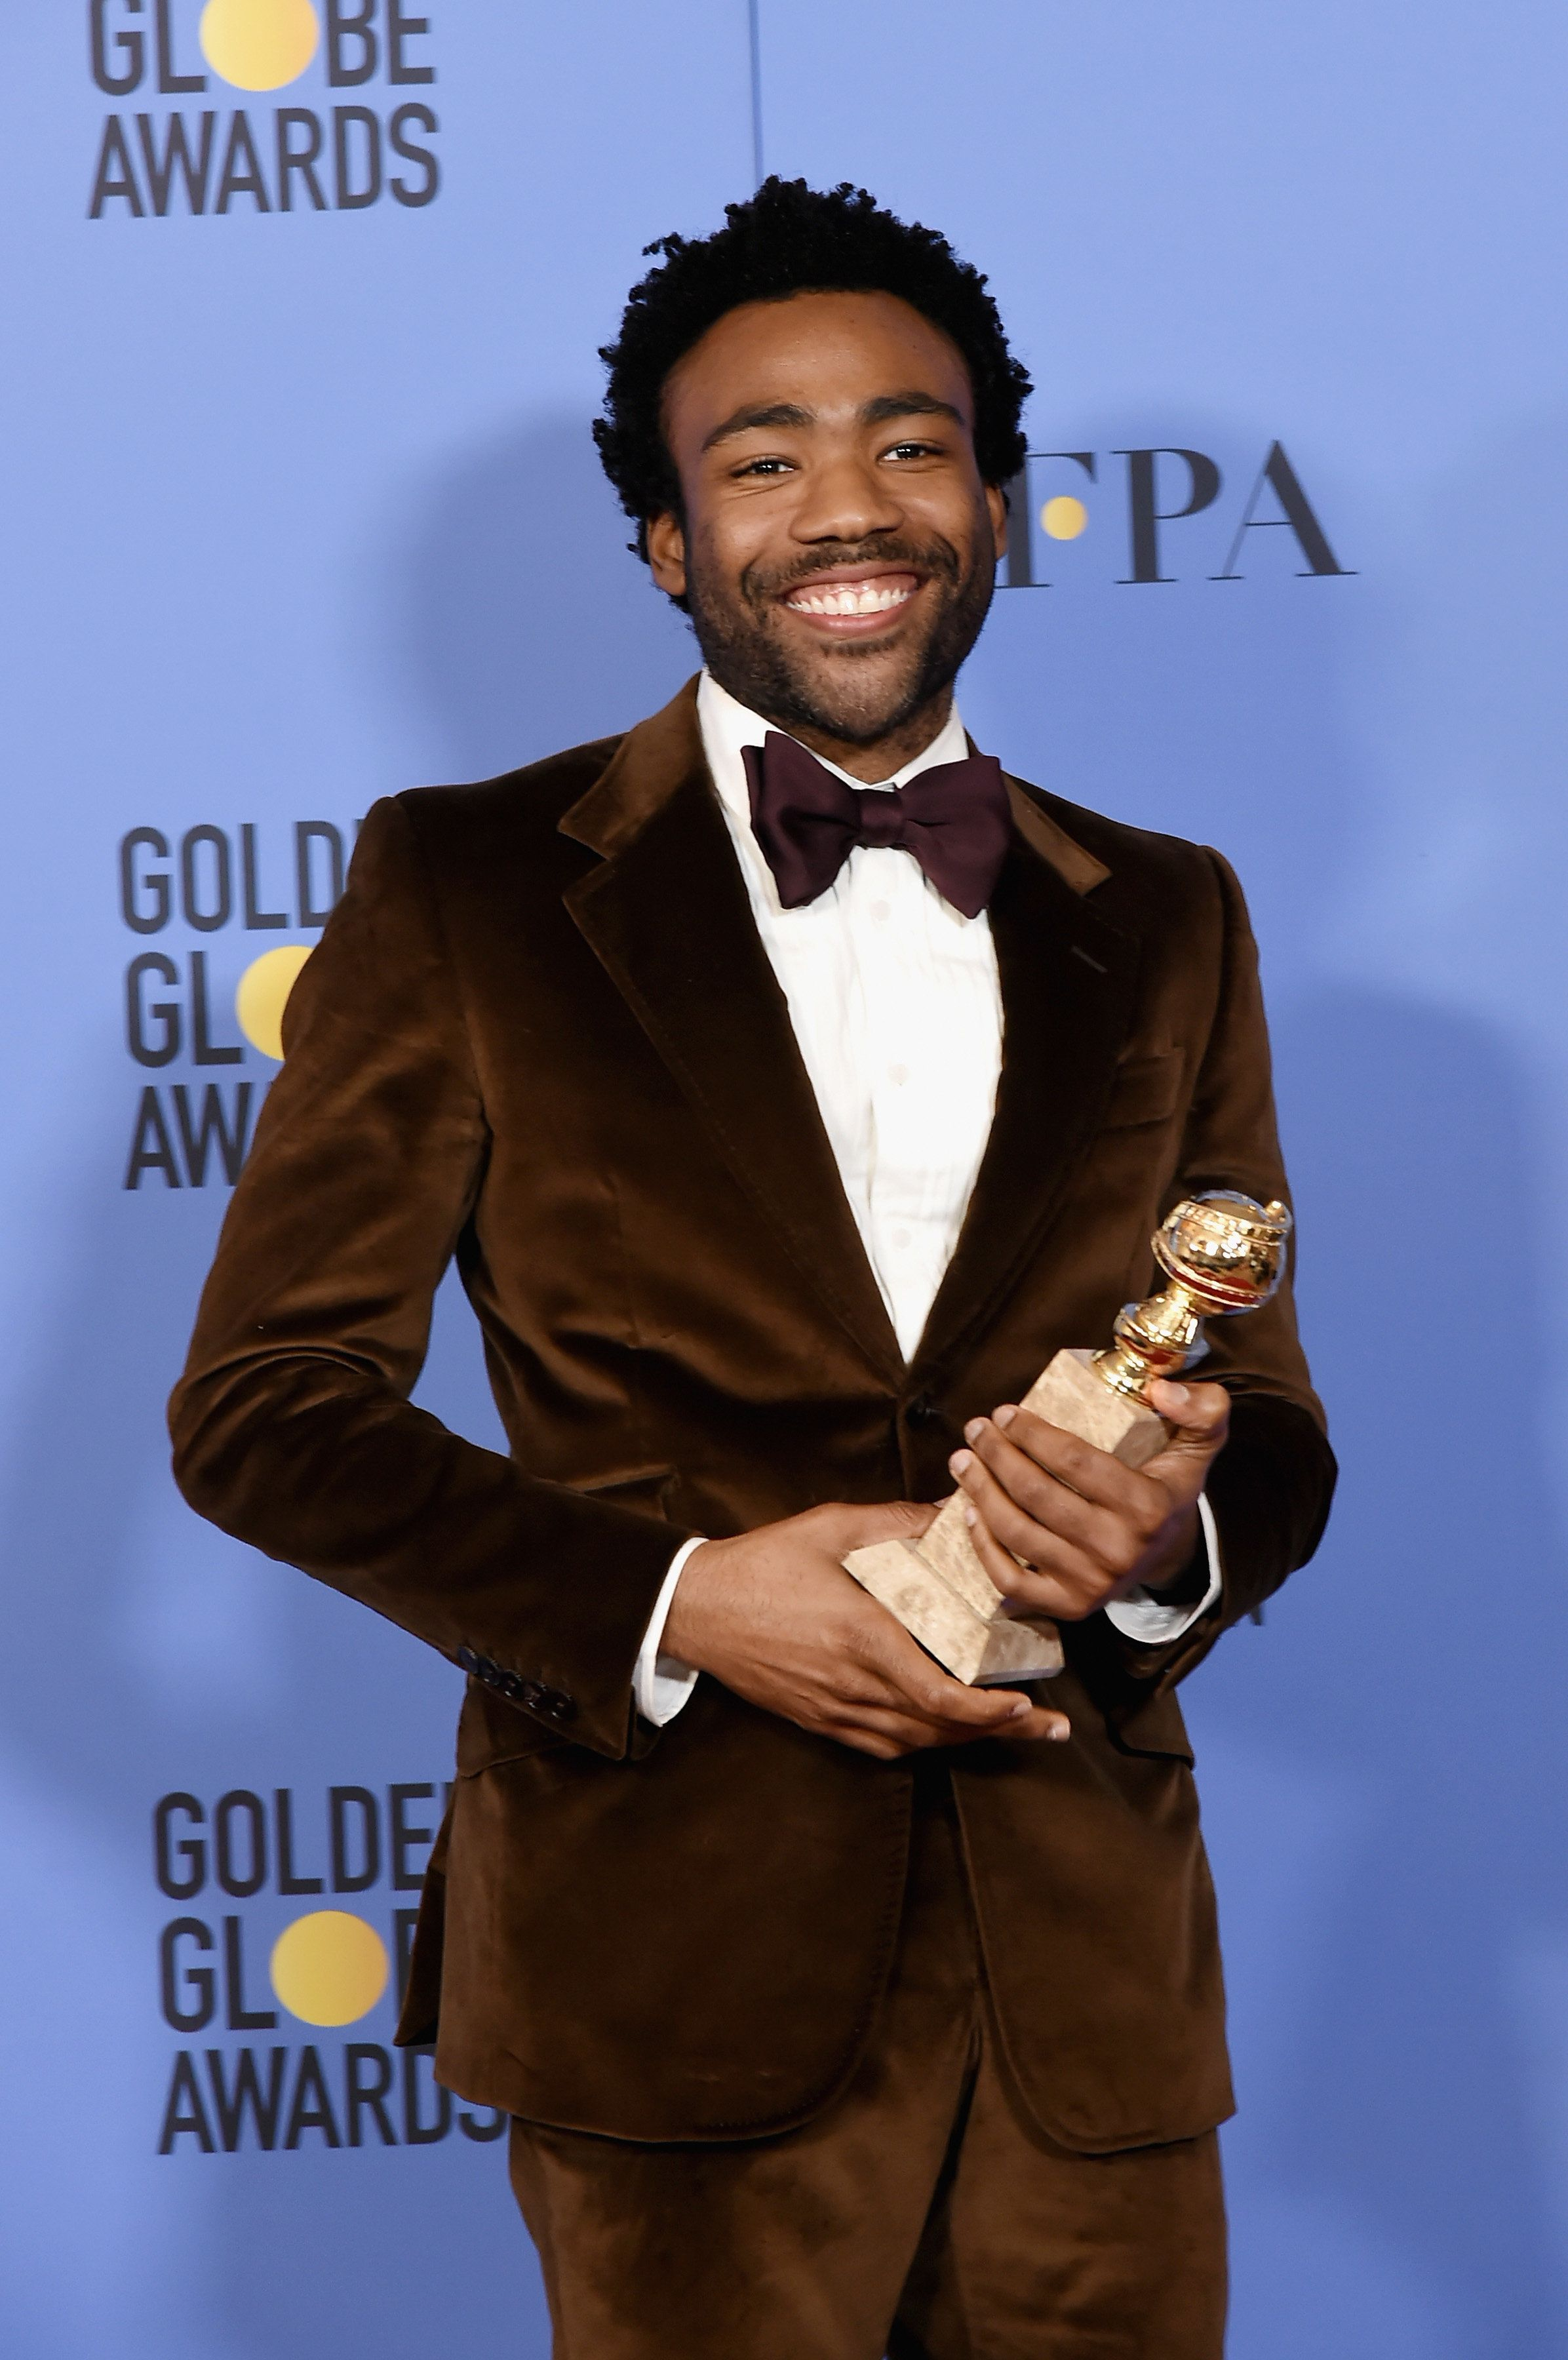 BEVERLY HILLS, CA - JANUARY 08:  Donald Glover attends the 74th Annual Golden Globe Awards - Press Room at The Beverly Hilton Hotel on January 8, 2017 in Beverly Hills, California.  (Photo by David Crotty/Patrick McMullan via Getty Images)